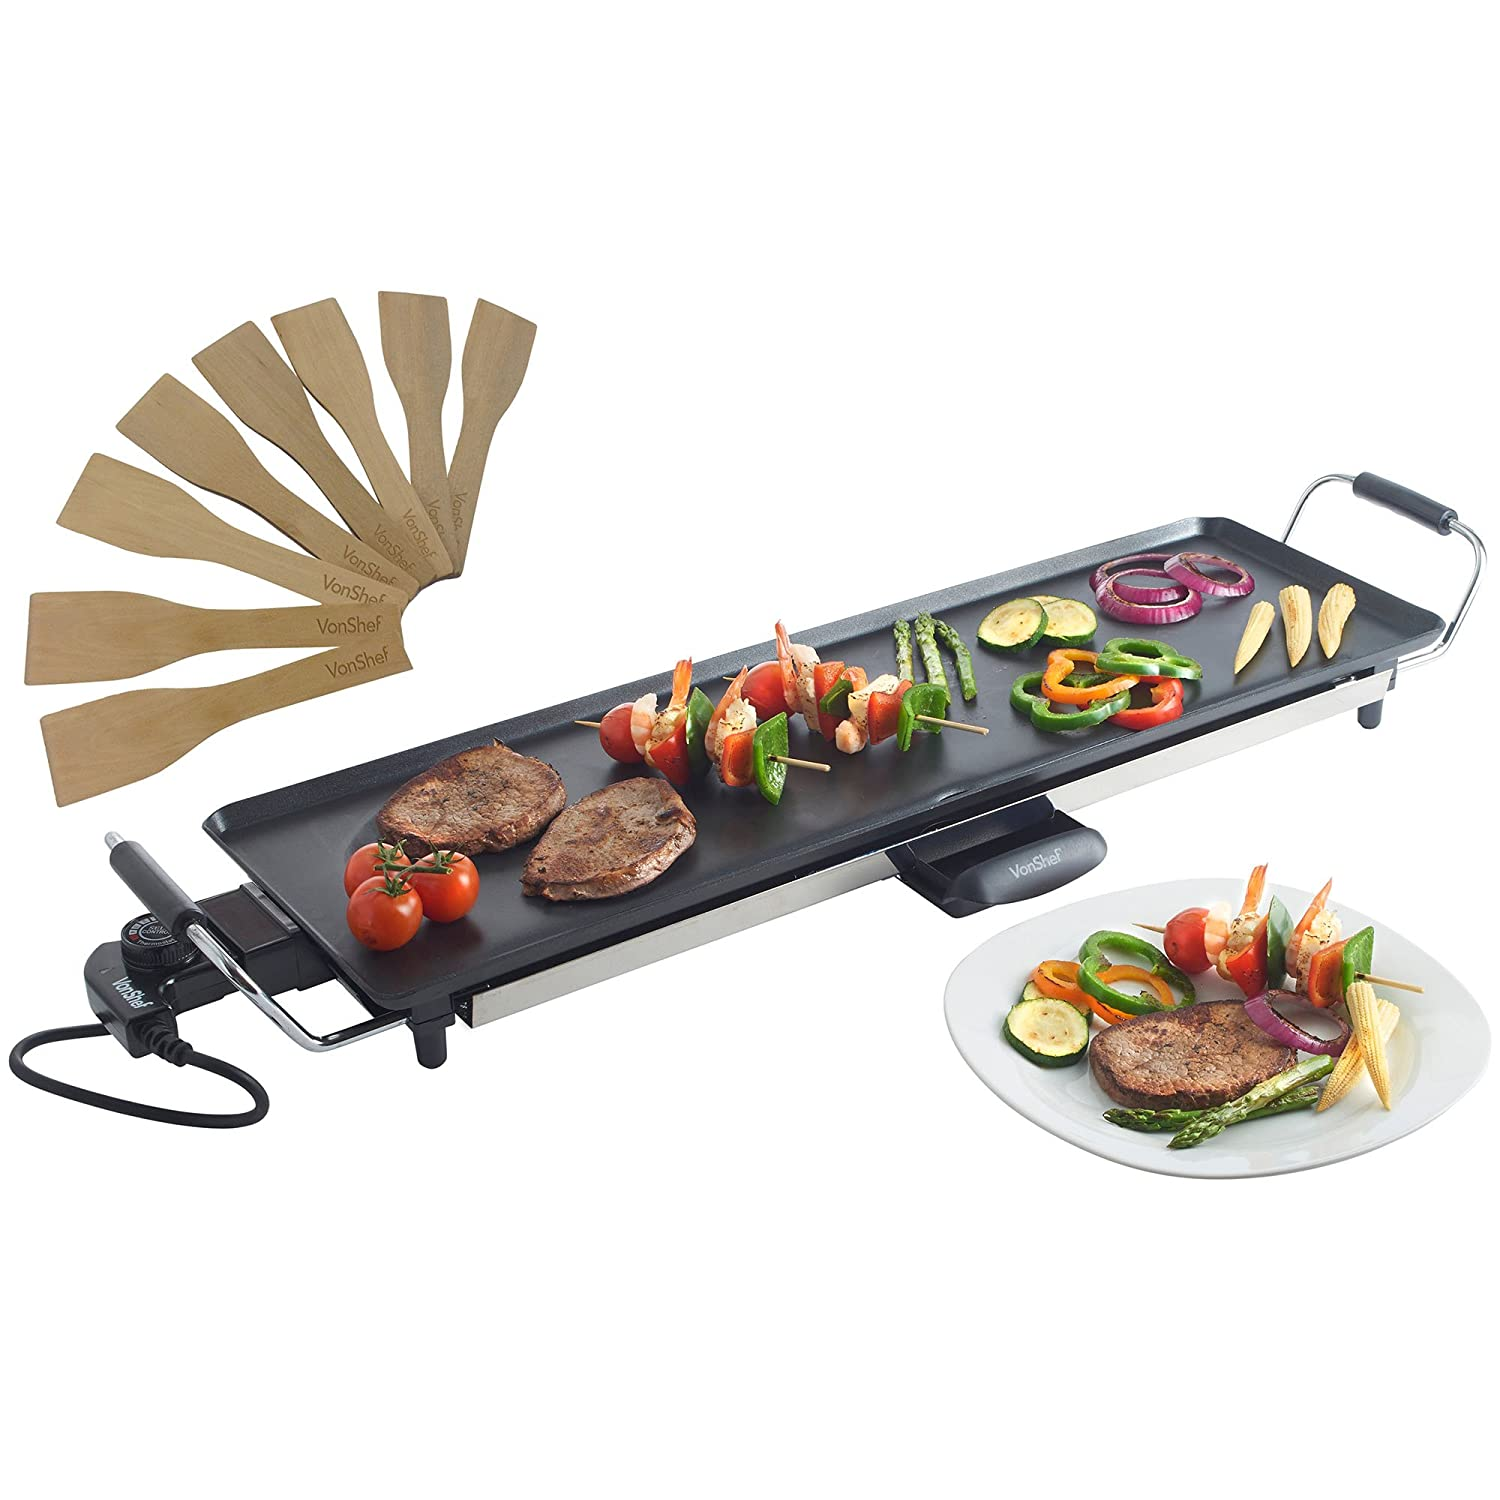 Uncategorized Teppanyaki Home vonshef electric xl teppanyaki style barbecue table grill griddle with adjustable temperature and 8 spatulas control 2000 watts